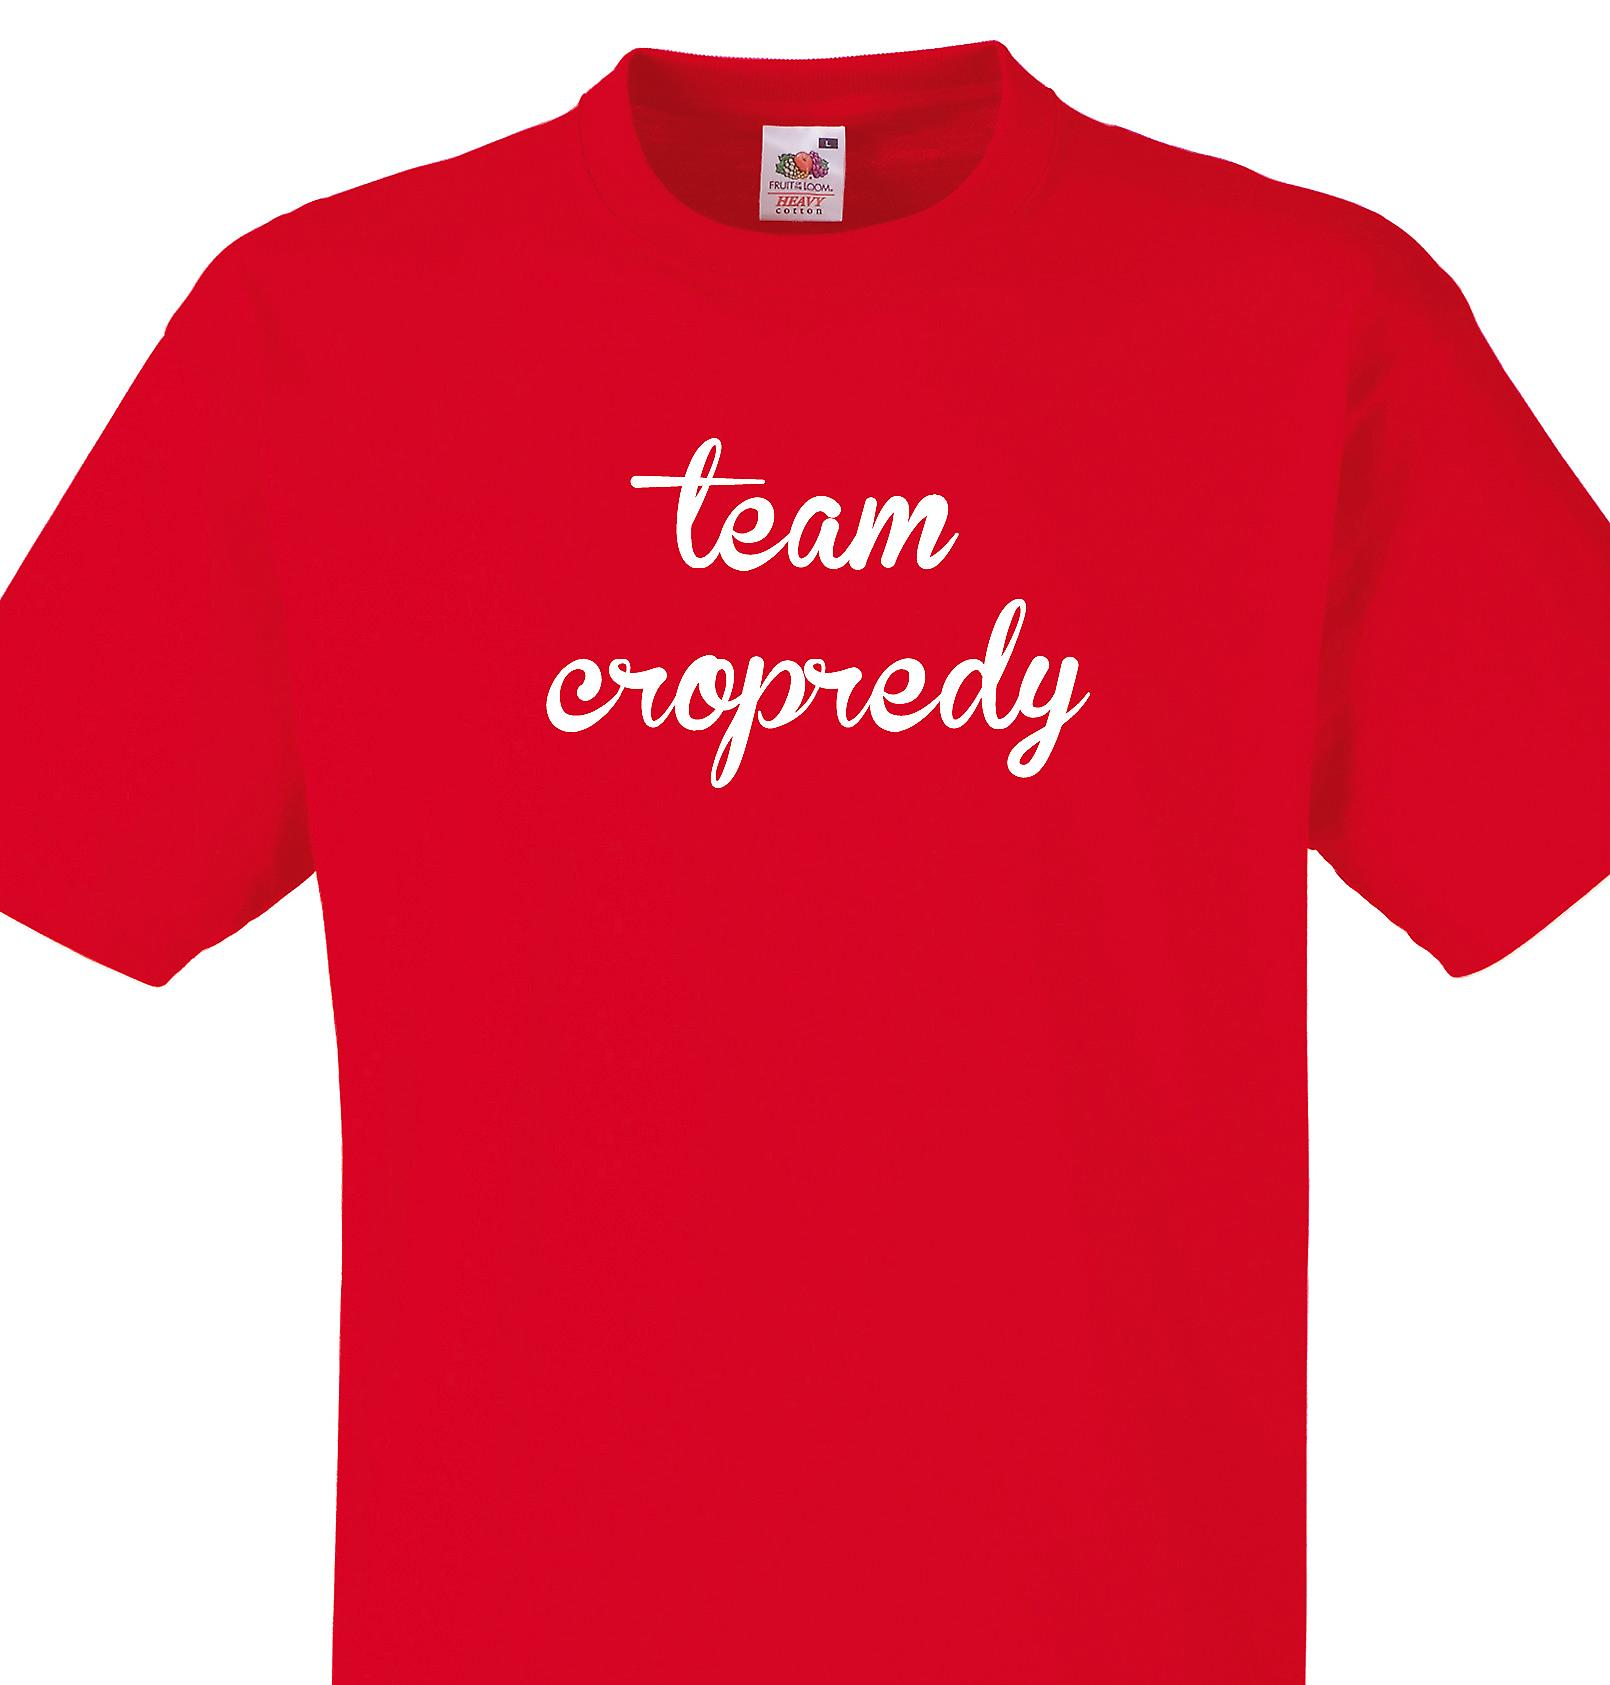 Team Cropredy Red T shirt